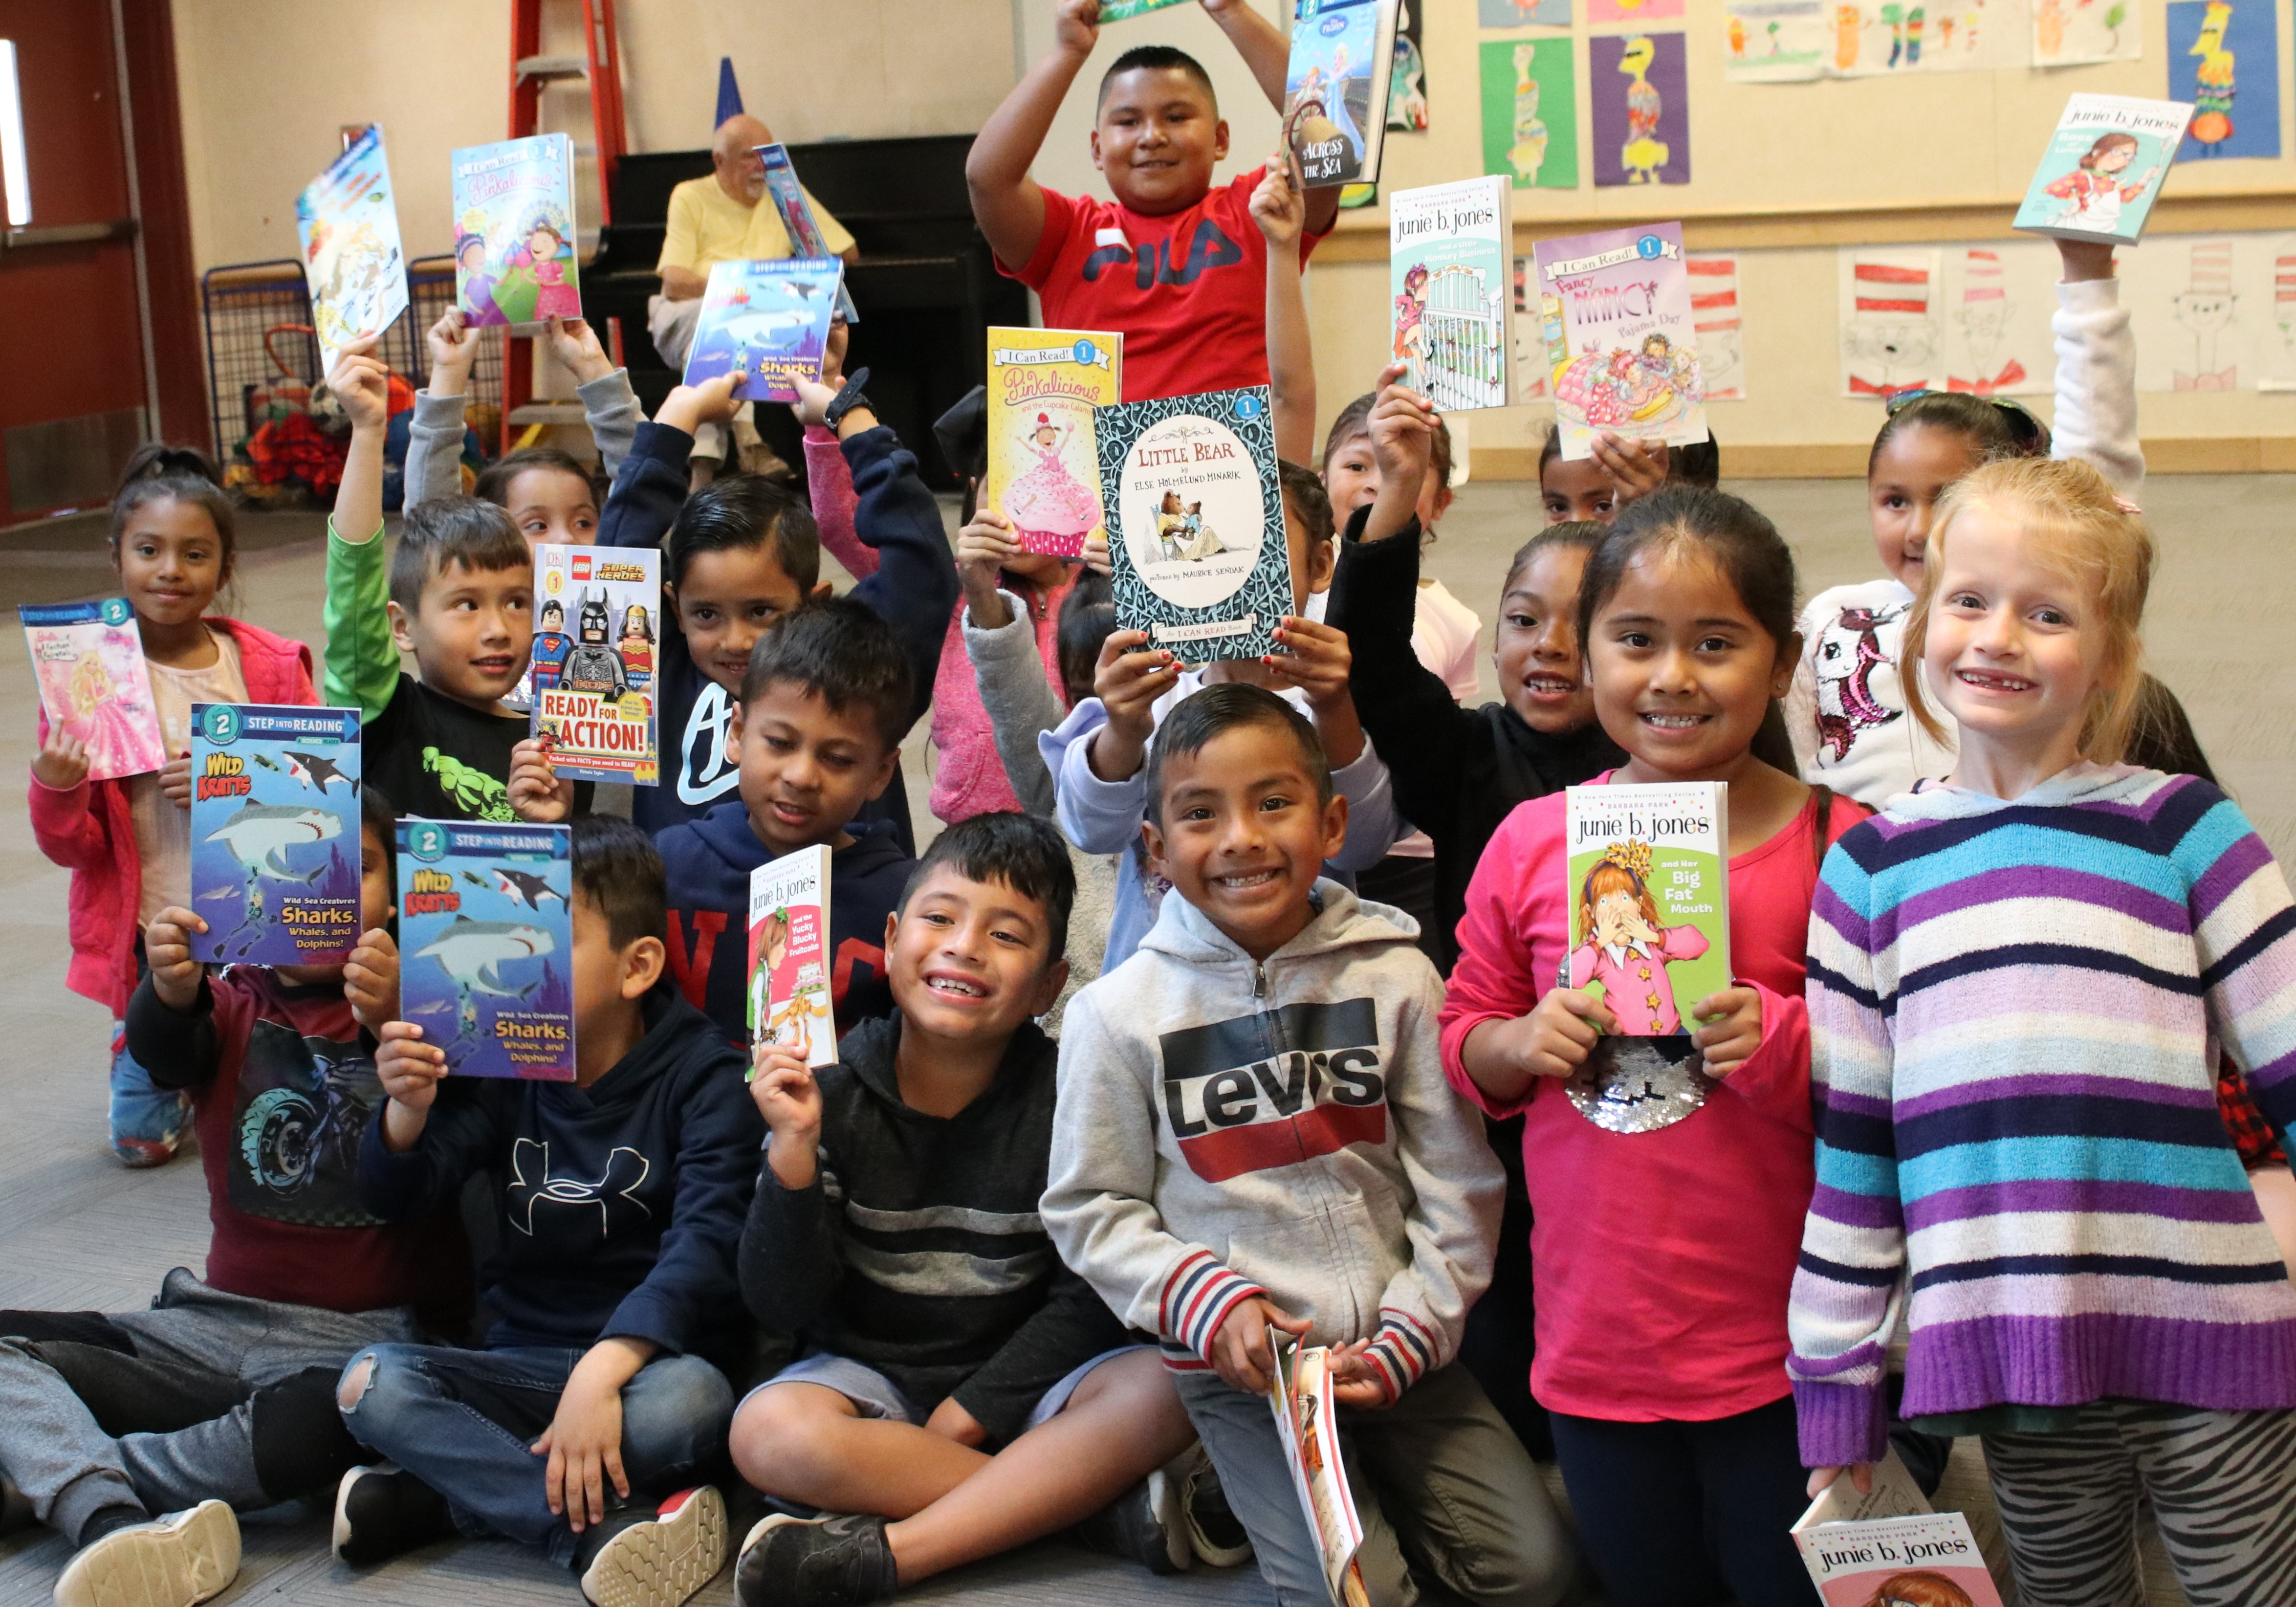 A group of children showing their books